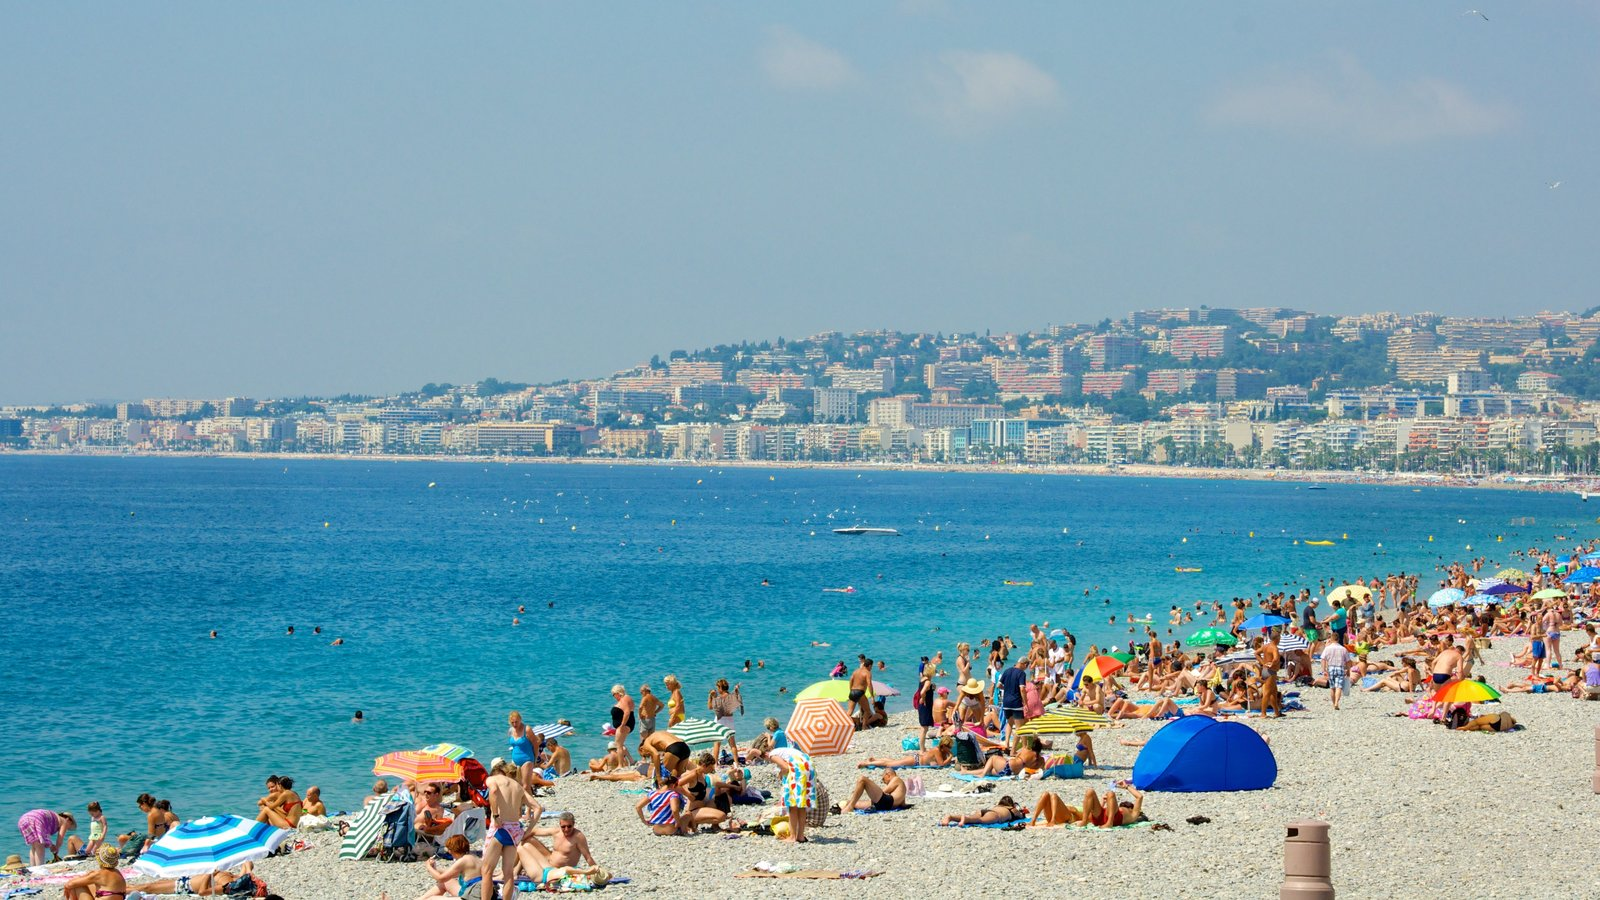 Nice featuring a coastal town and a sandy beach as well as a large group of people